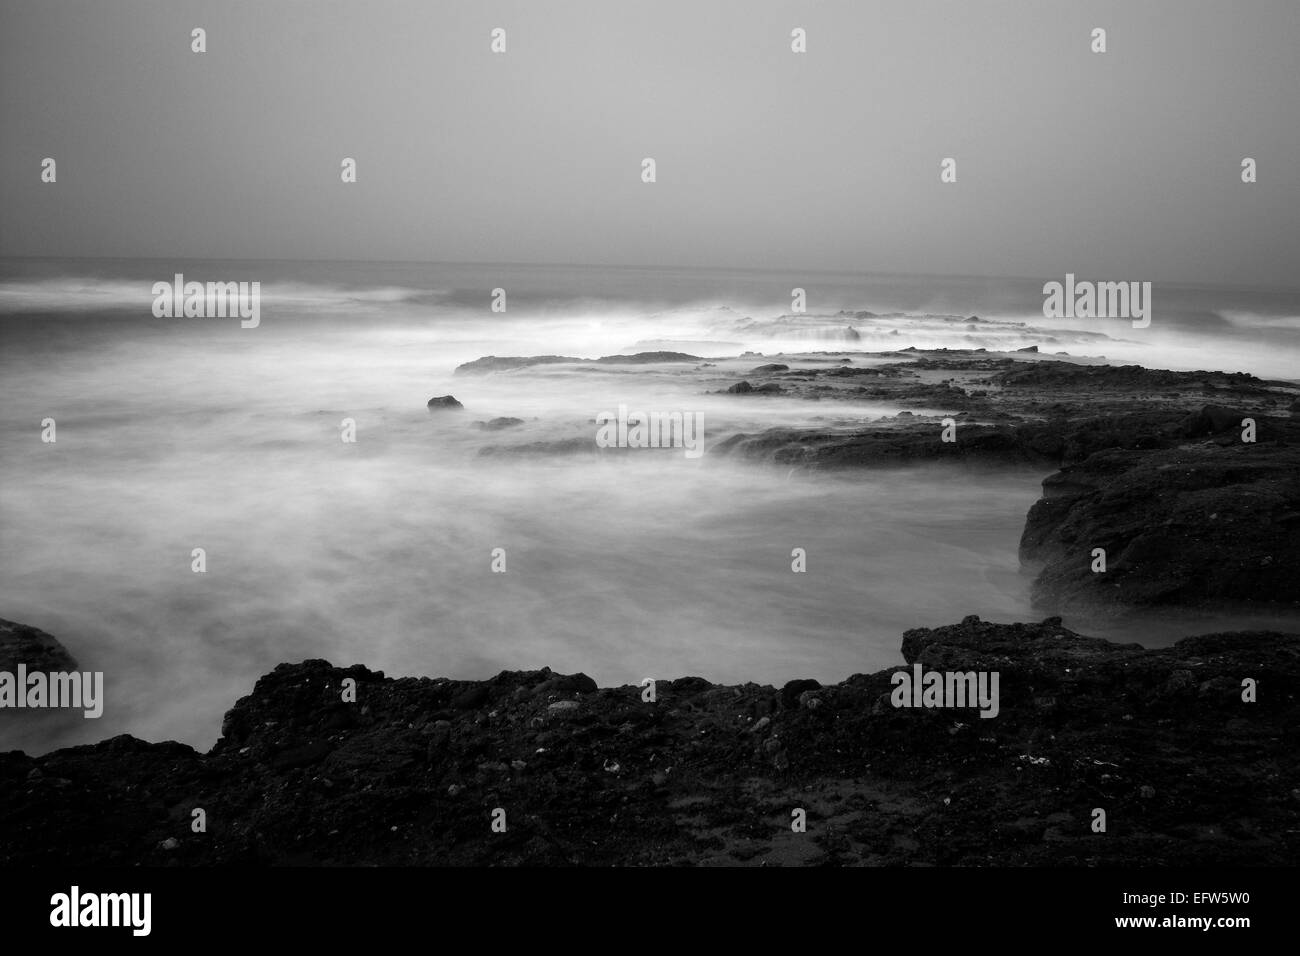 An early morning slow motion images of seawater rushing over sharp, rugged shoreline reef in Laguna Beach, California. - Stock Image